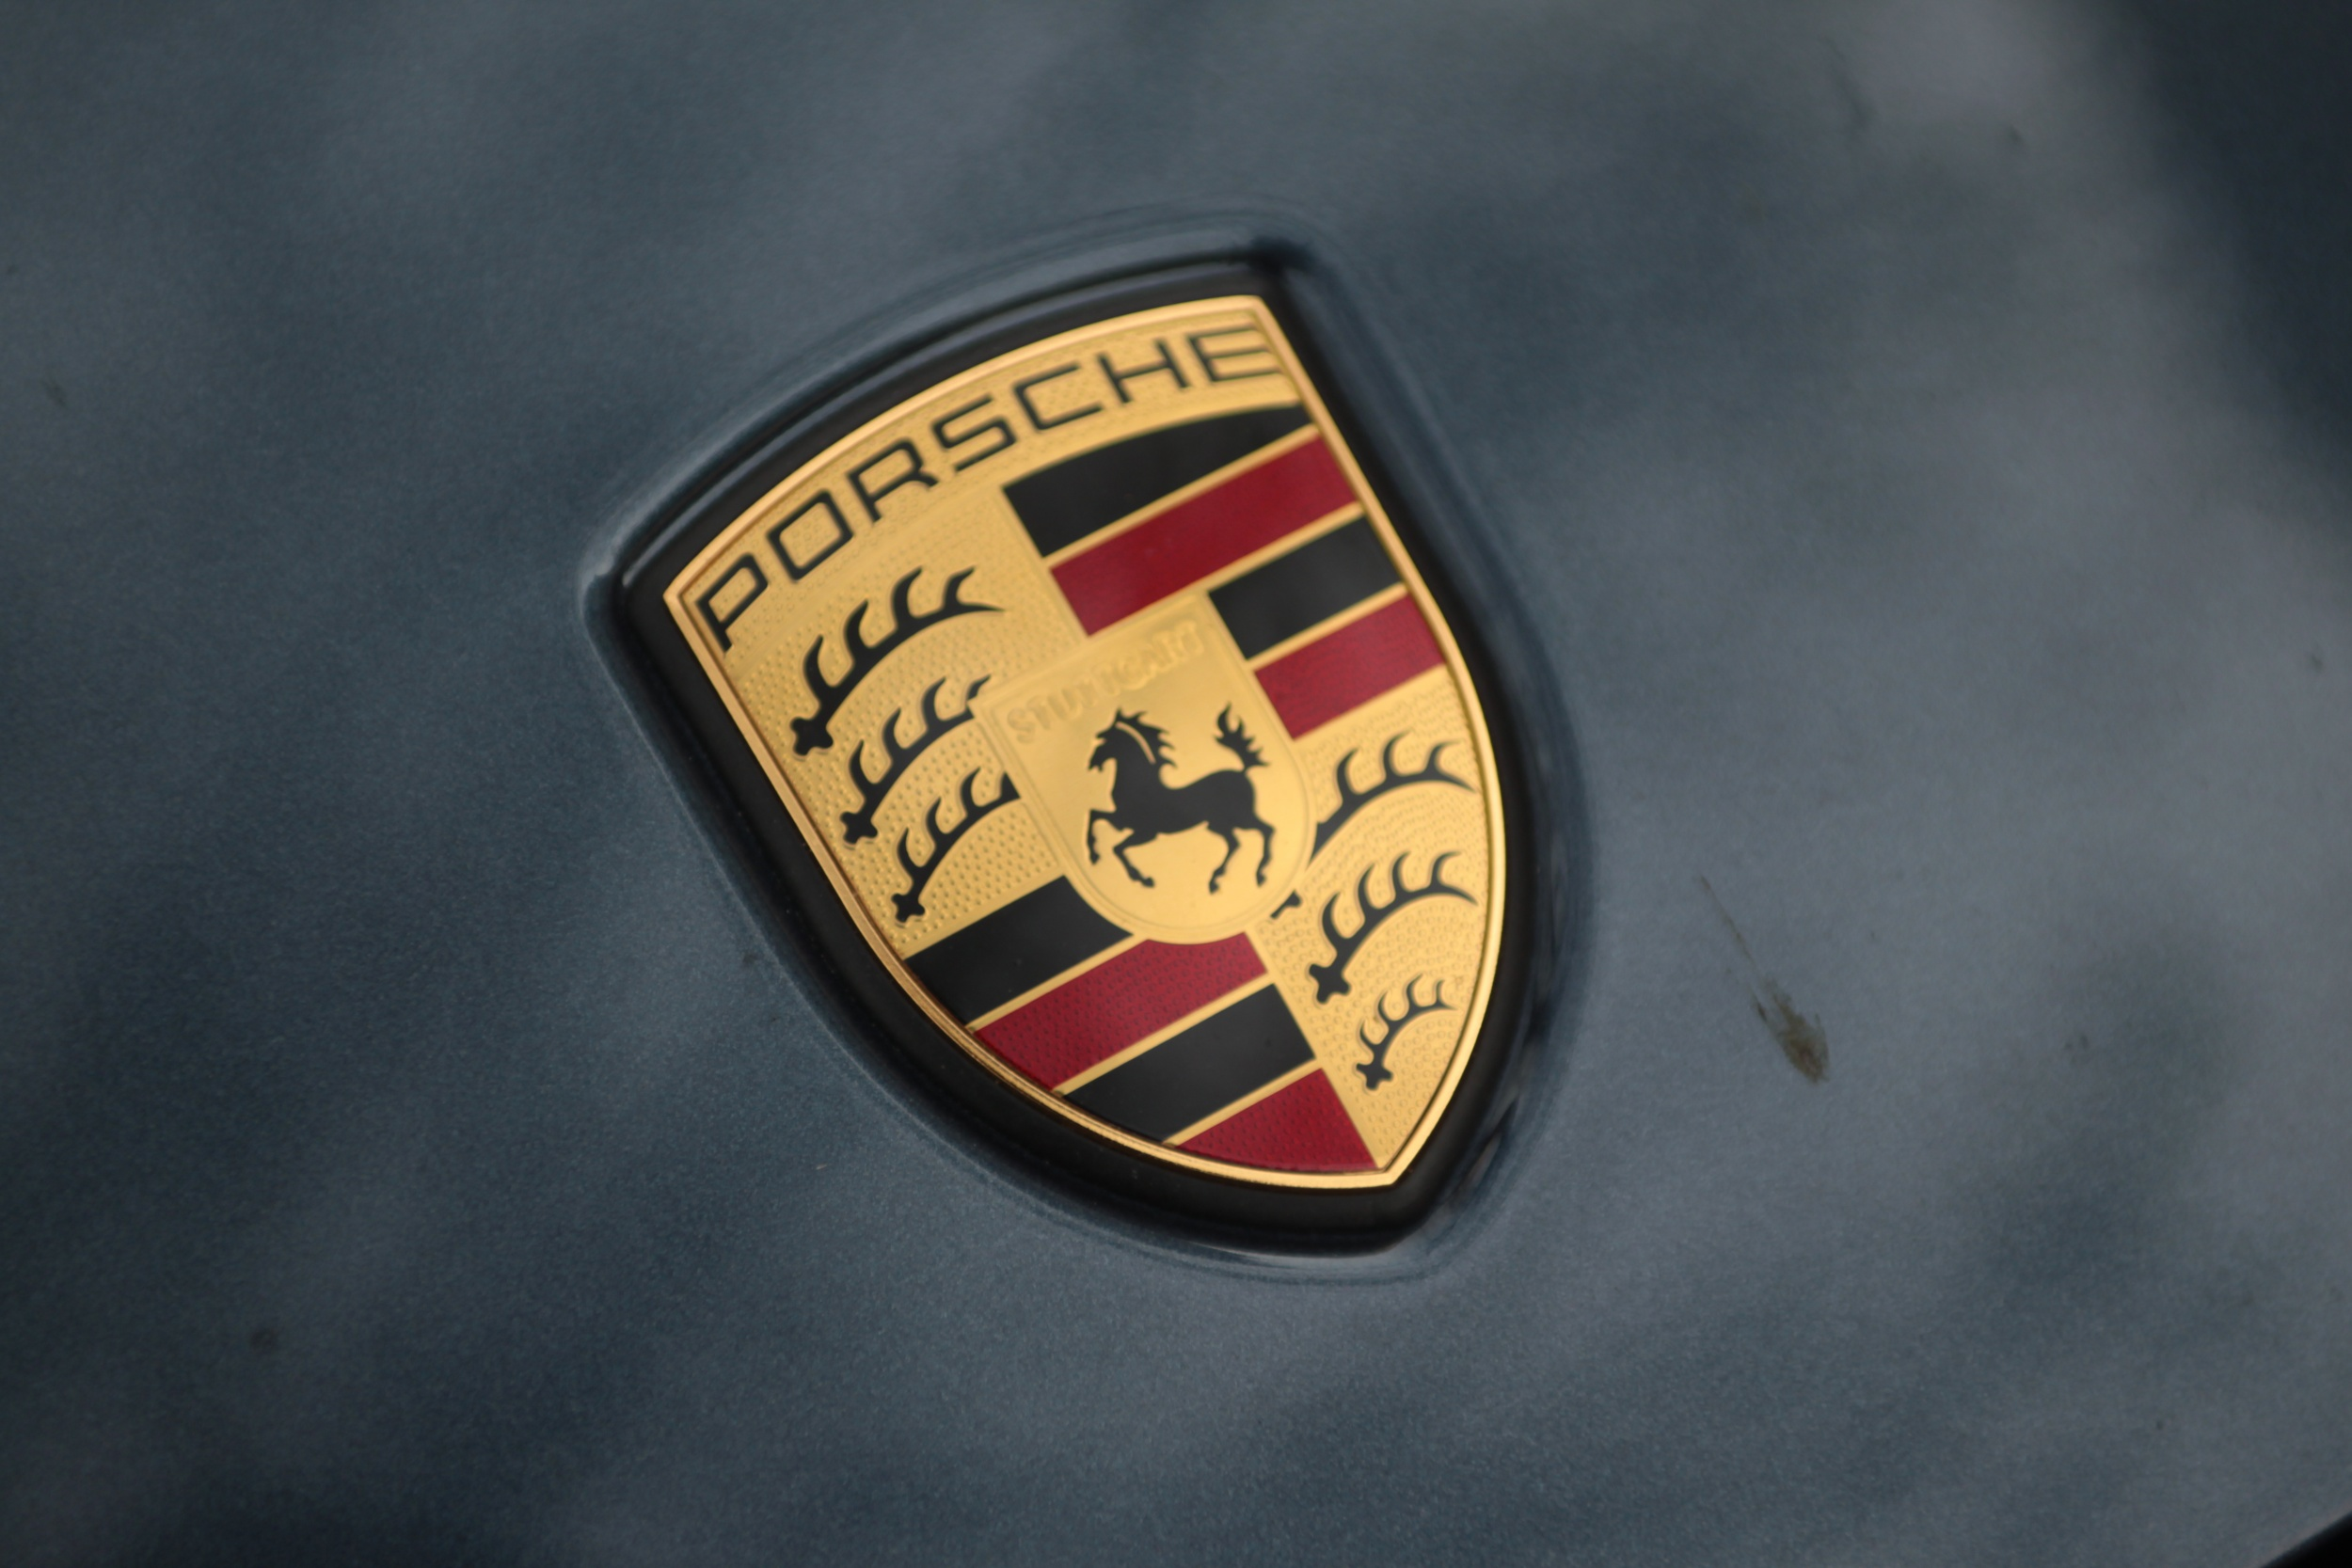 Porsche Logo Wallpaper IPhone Wallpapers 2500x1667